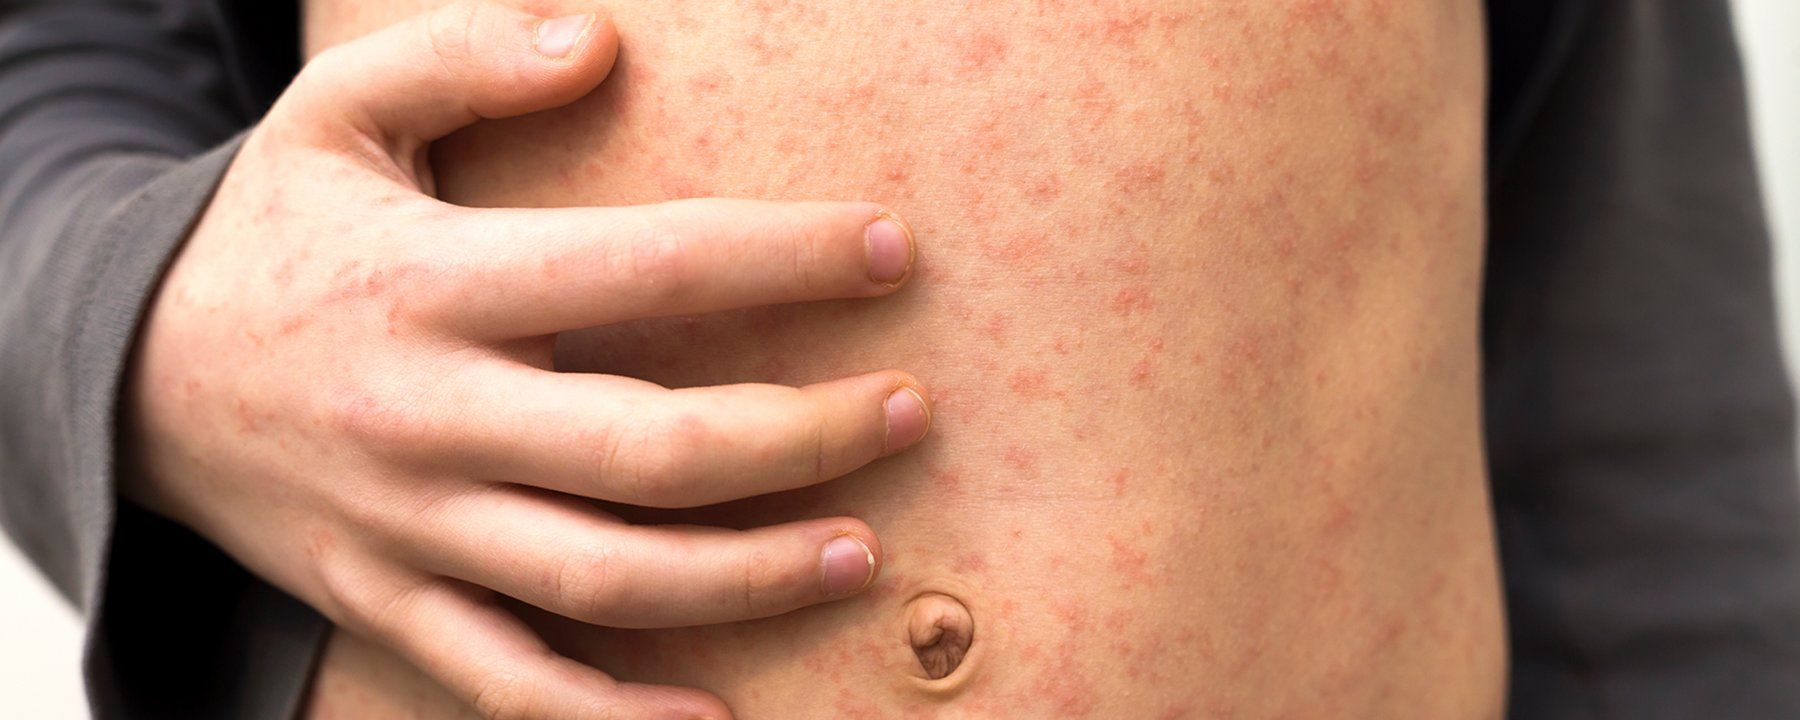 Measles Leaves the Immune System Vulnerable to Other Diseases